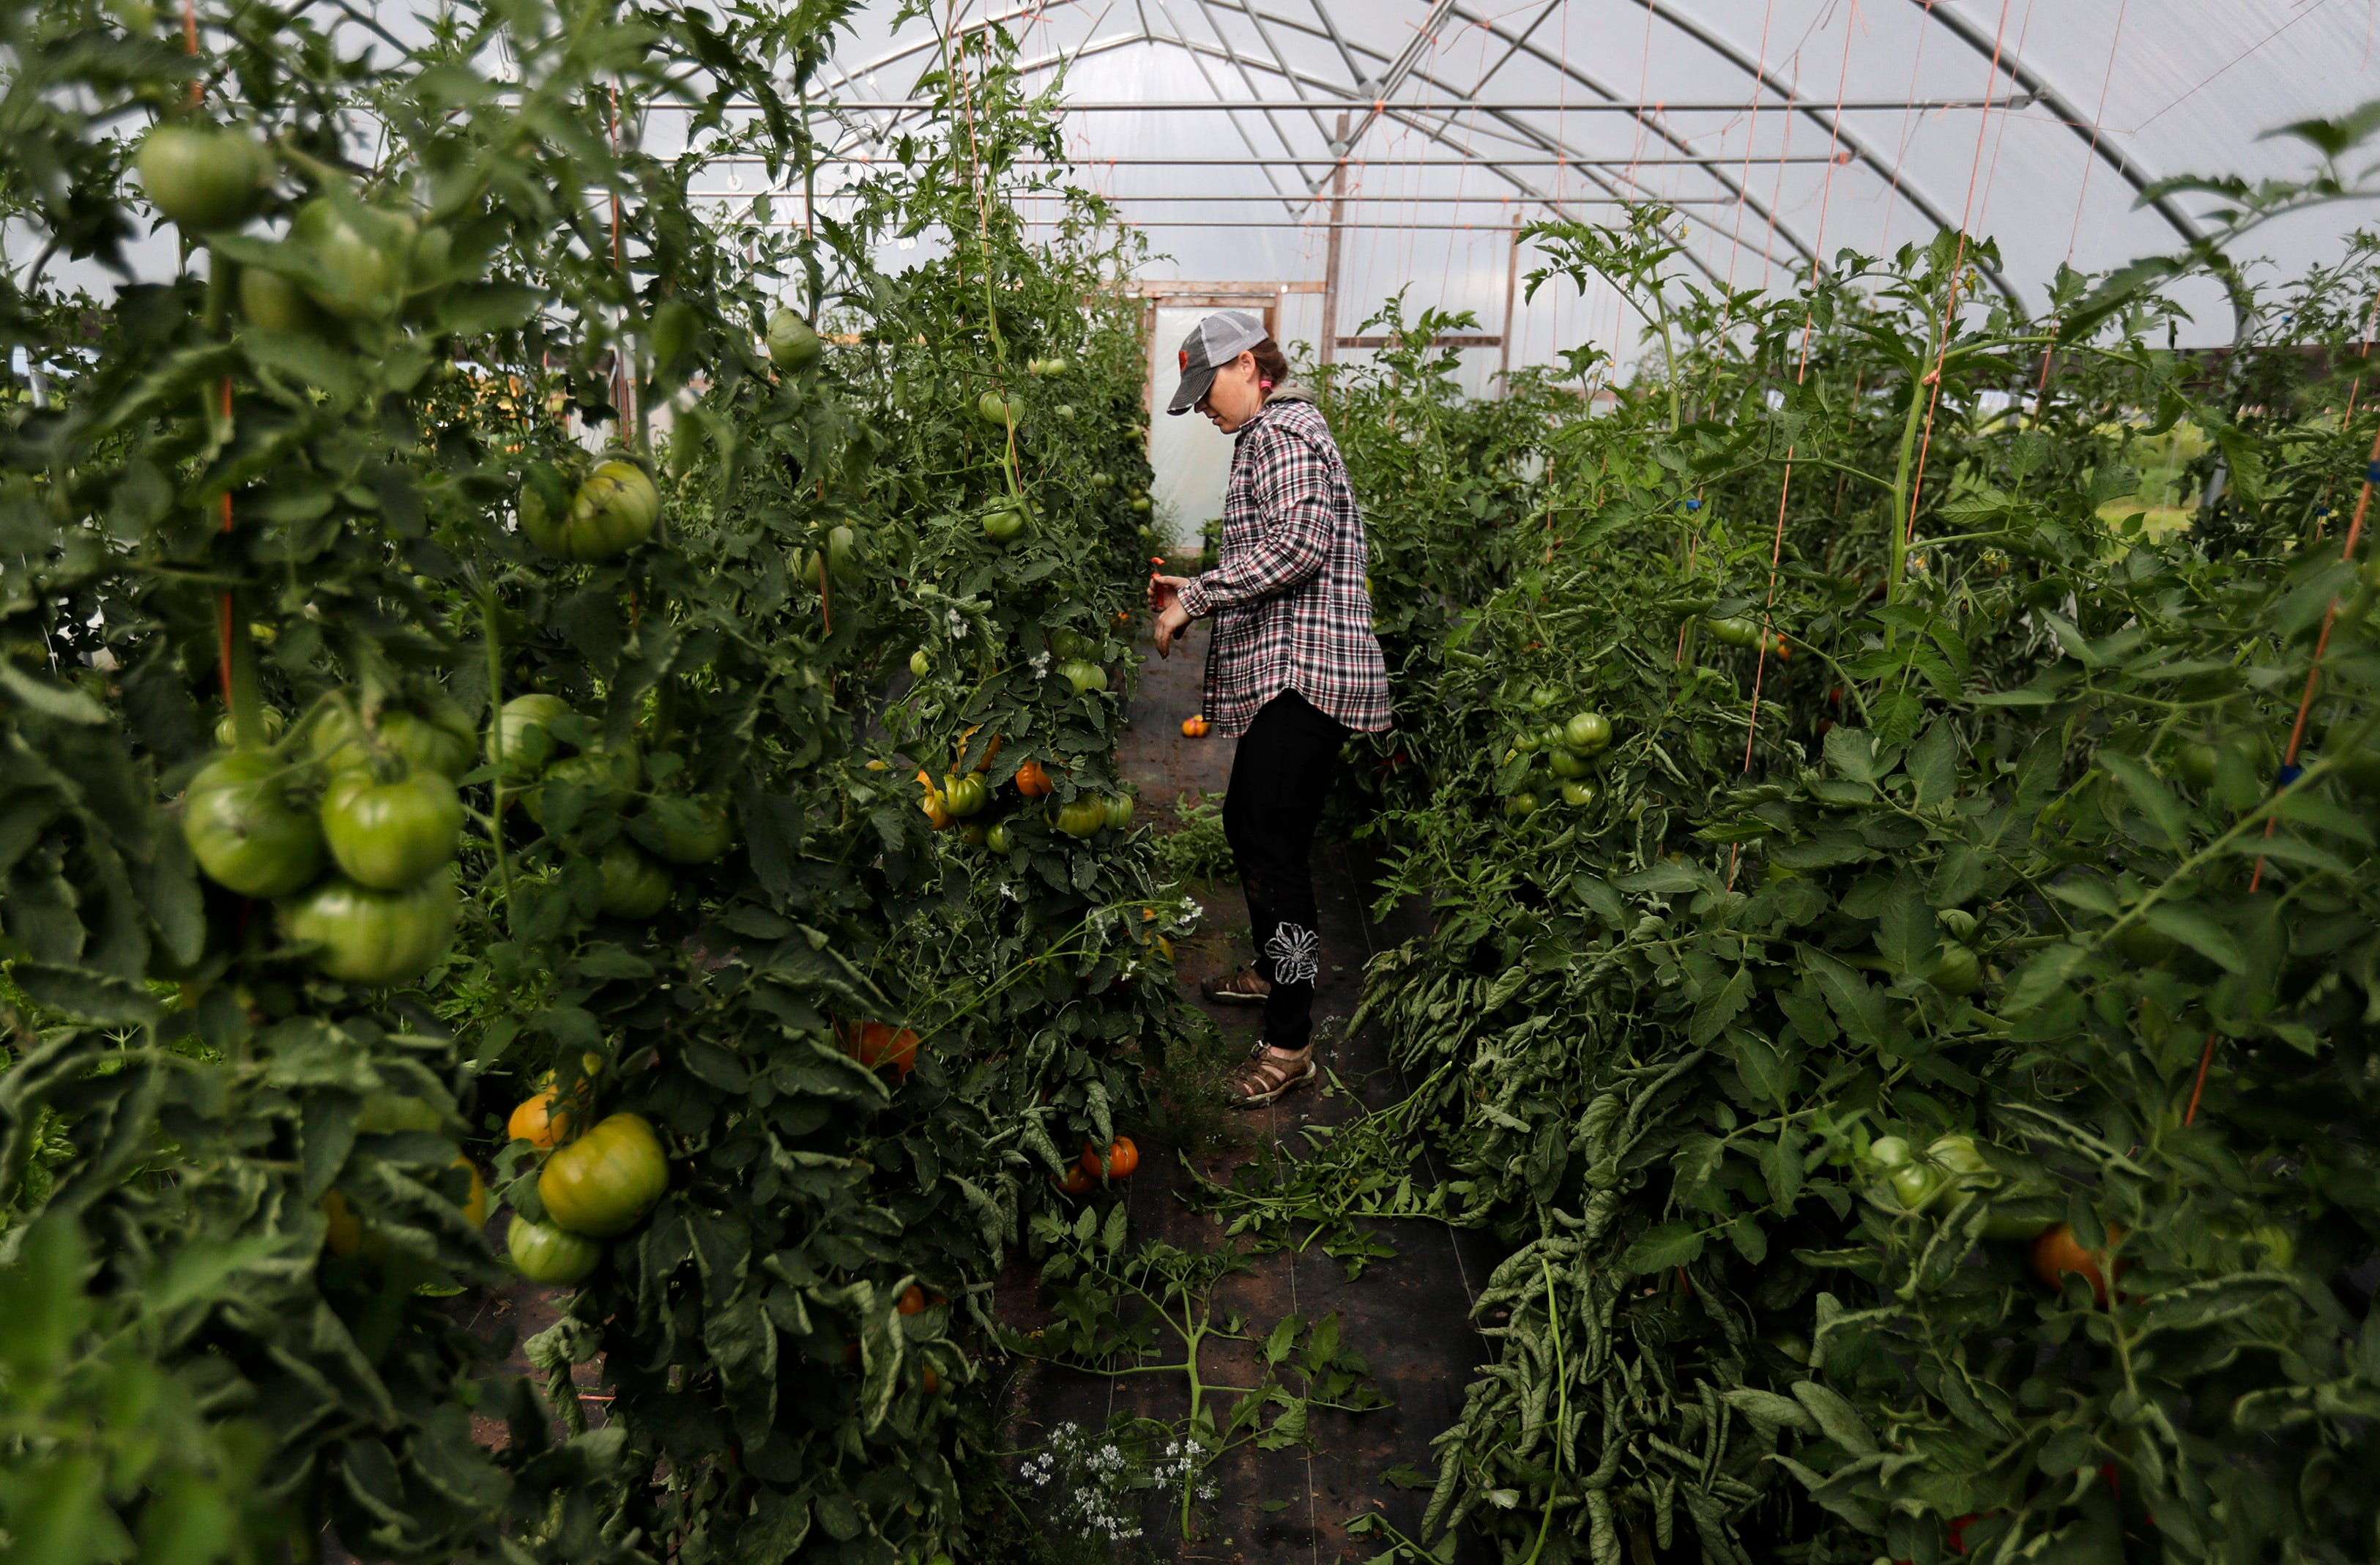 Rachel Baranczyk, an employee with Full Circle Community Farm, weeds through tomatoes Tuesday, Aug. 27, 2019 in Seymour, Wis.